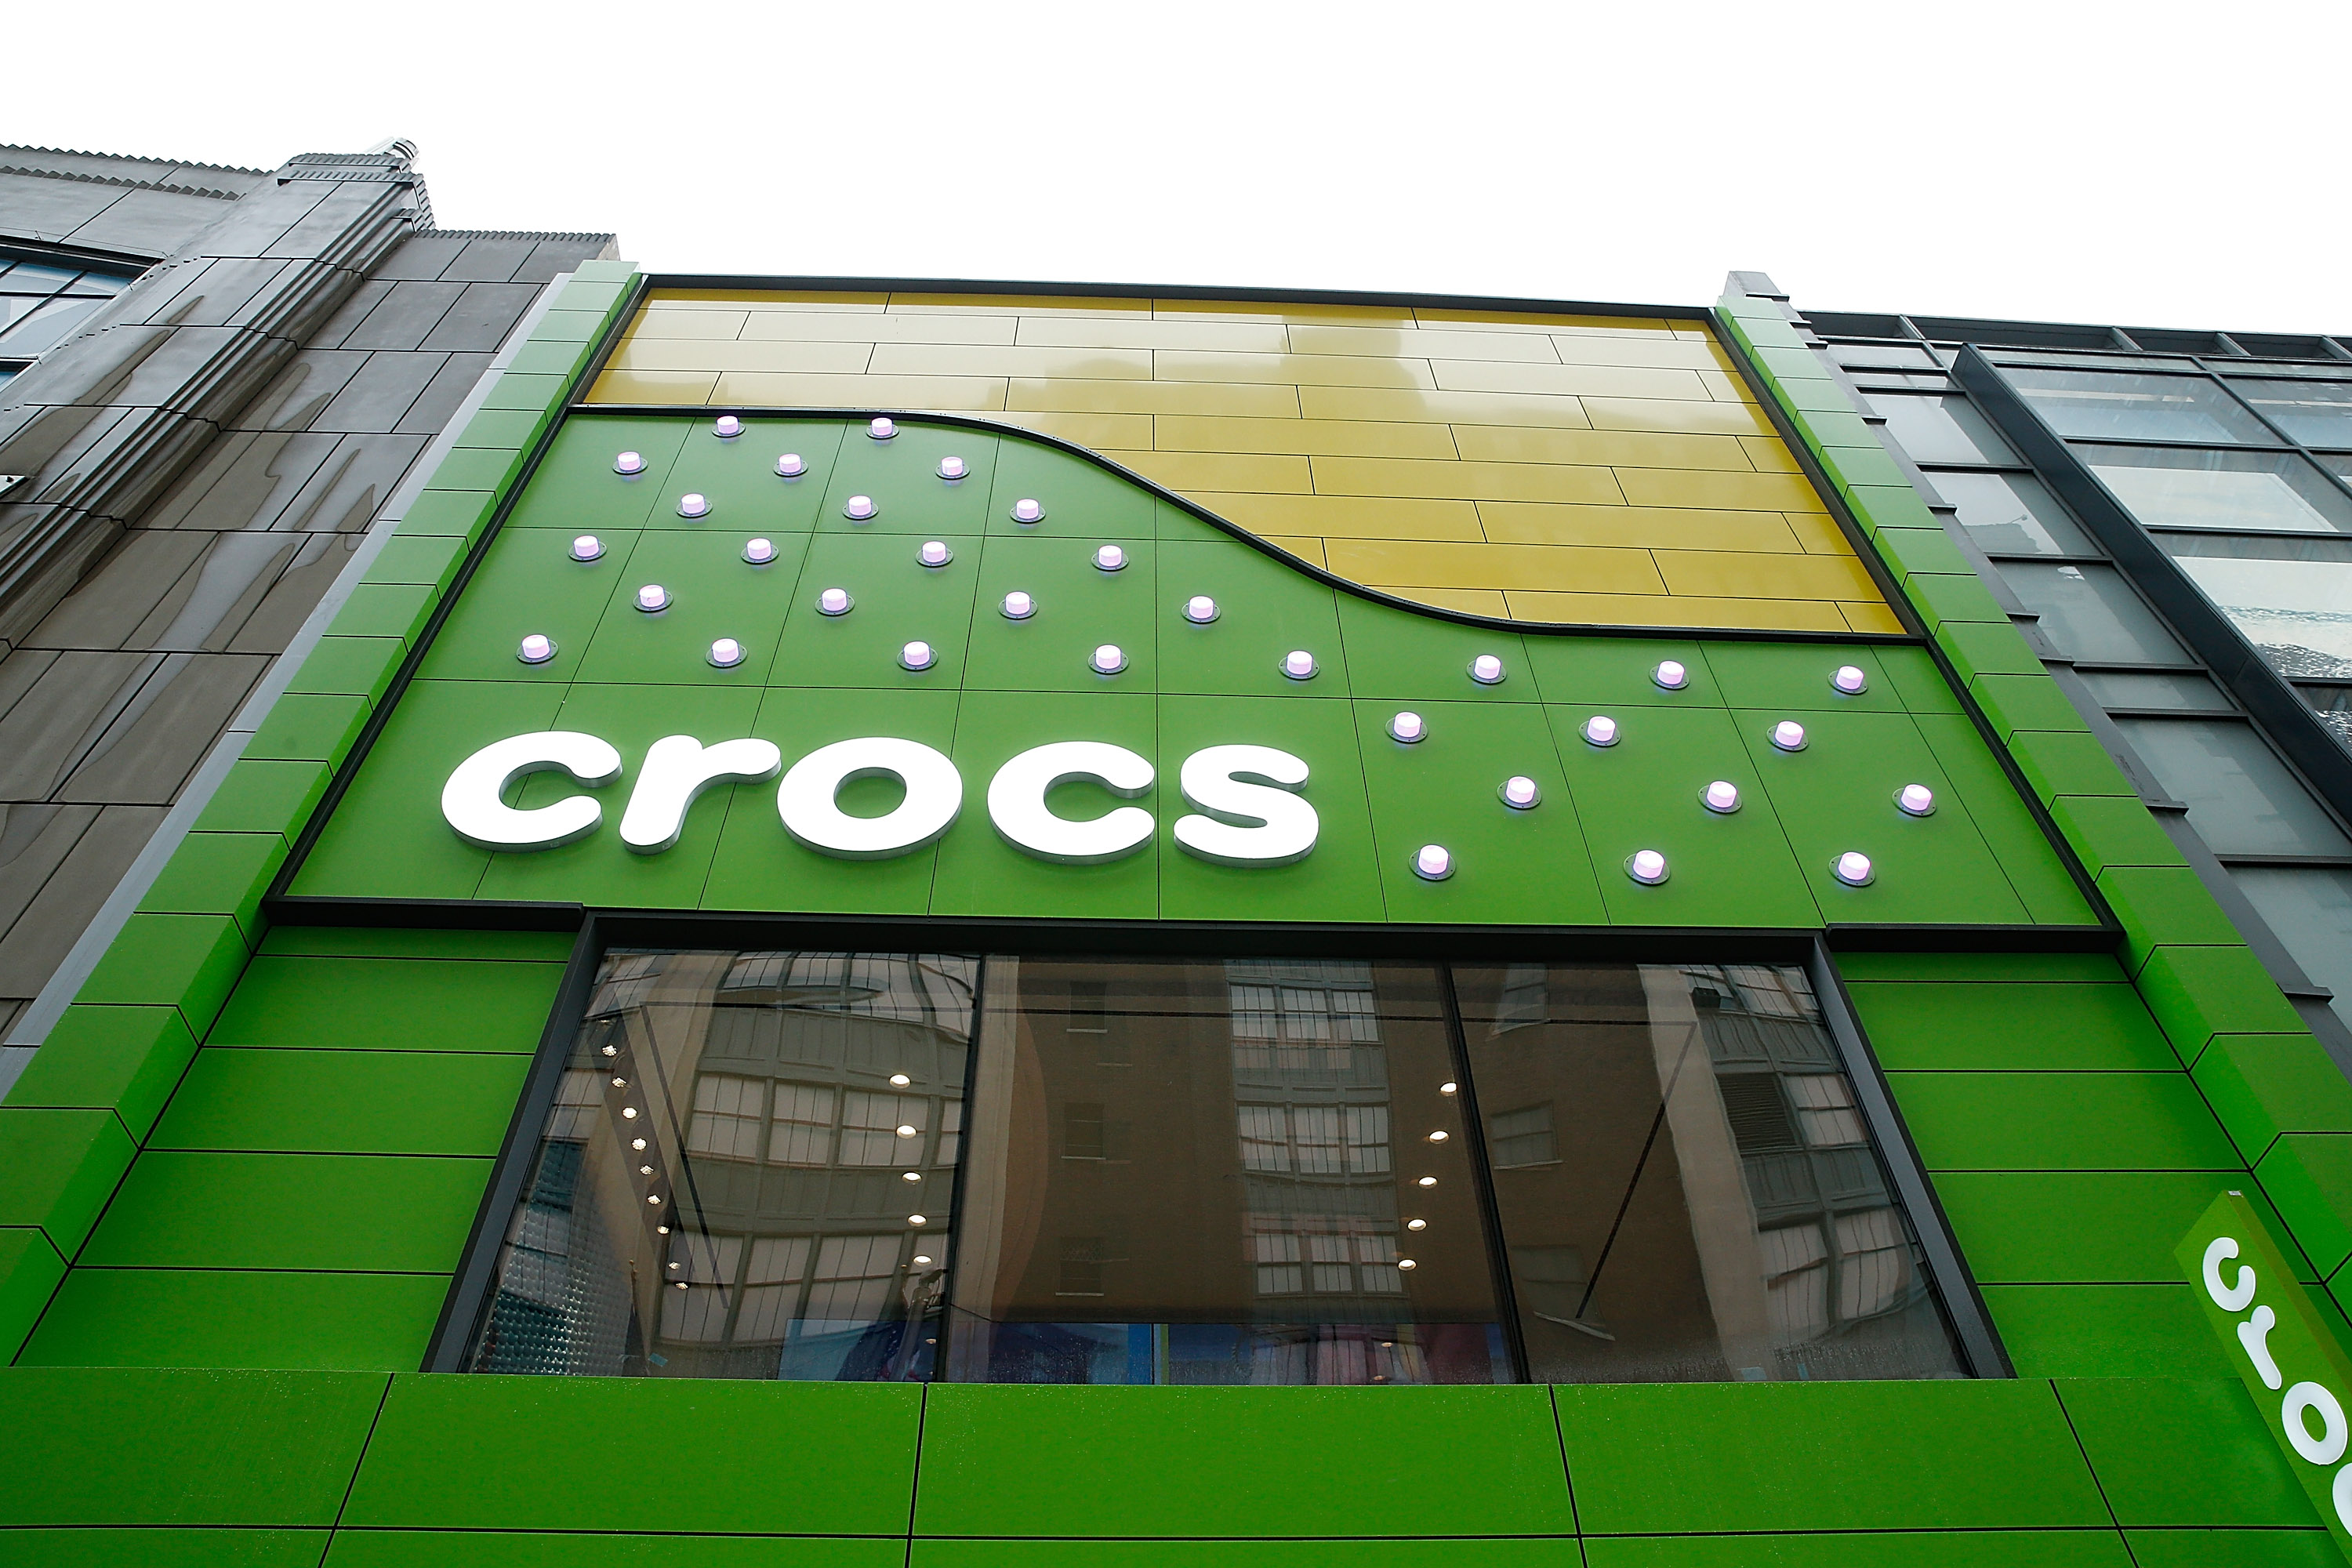 Complete Crocs in New York Store Locator. List of all Crocs locations in New York. Find hours of operation, street address, driving map, and contact information.